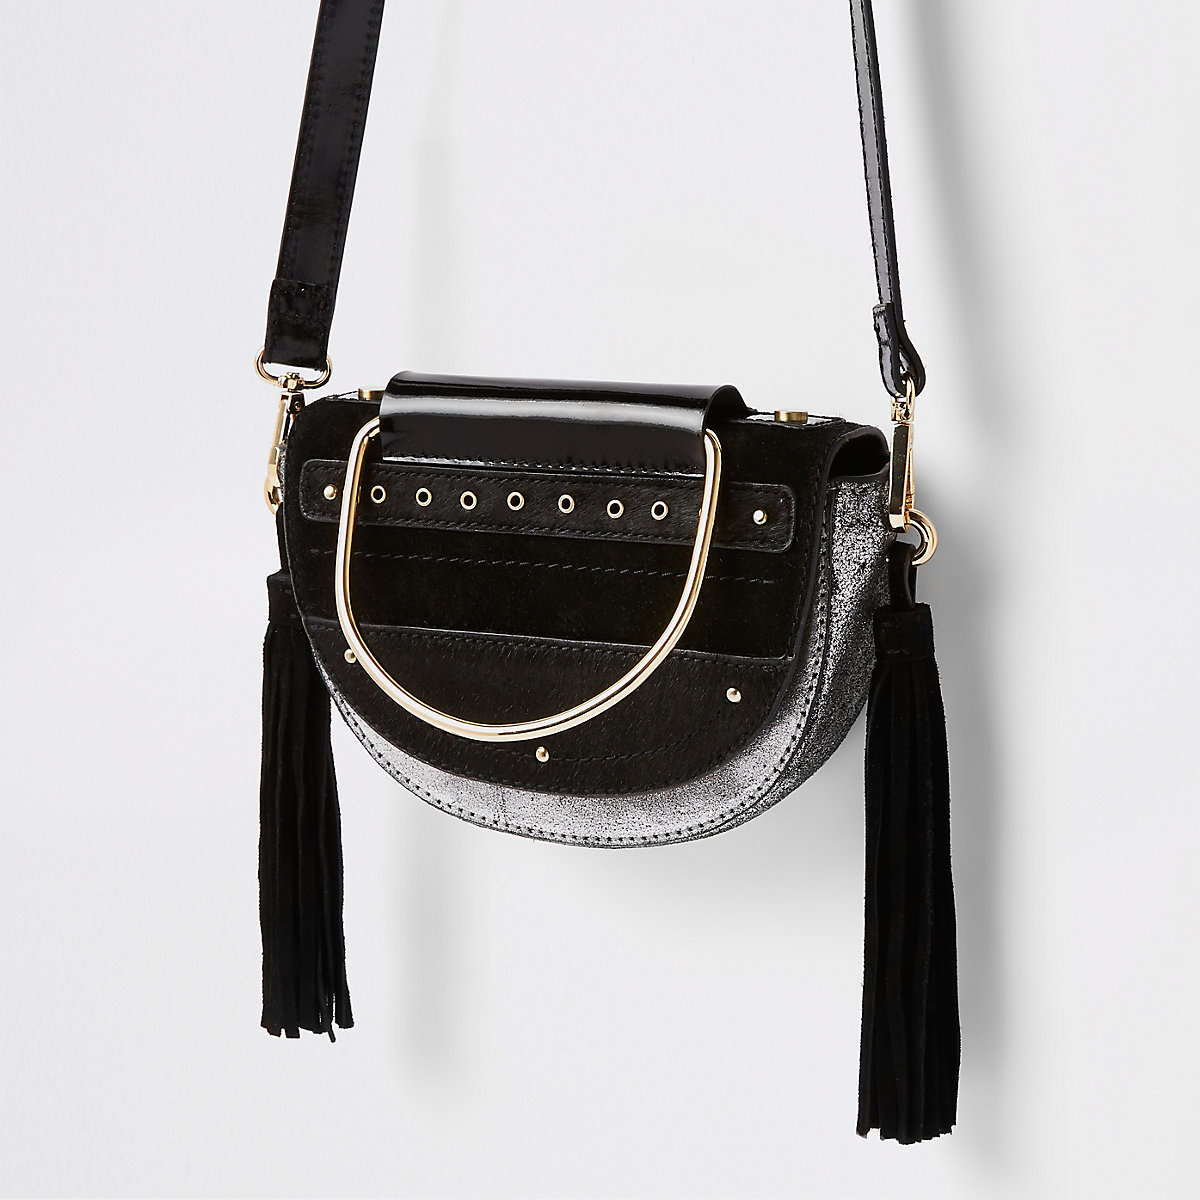 Black leather half moon cross body bag